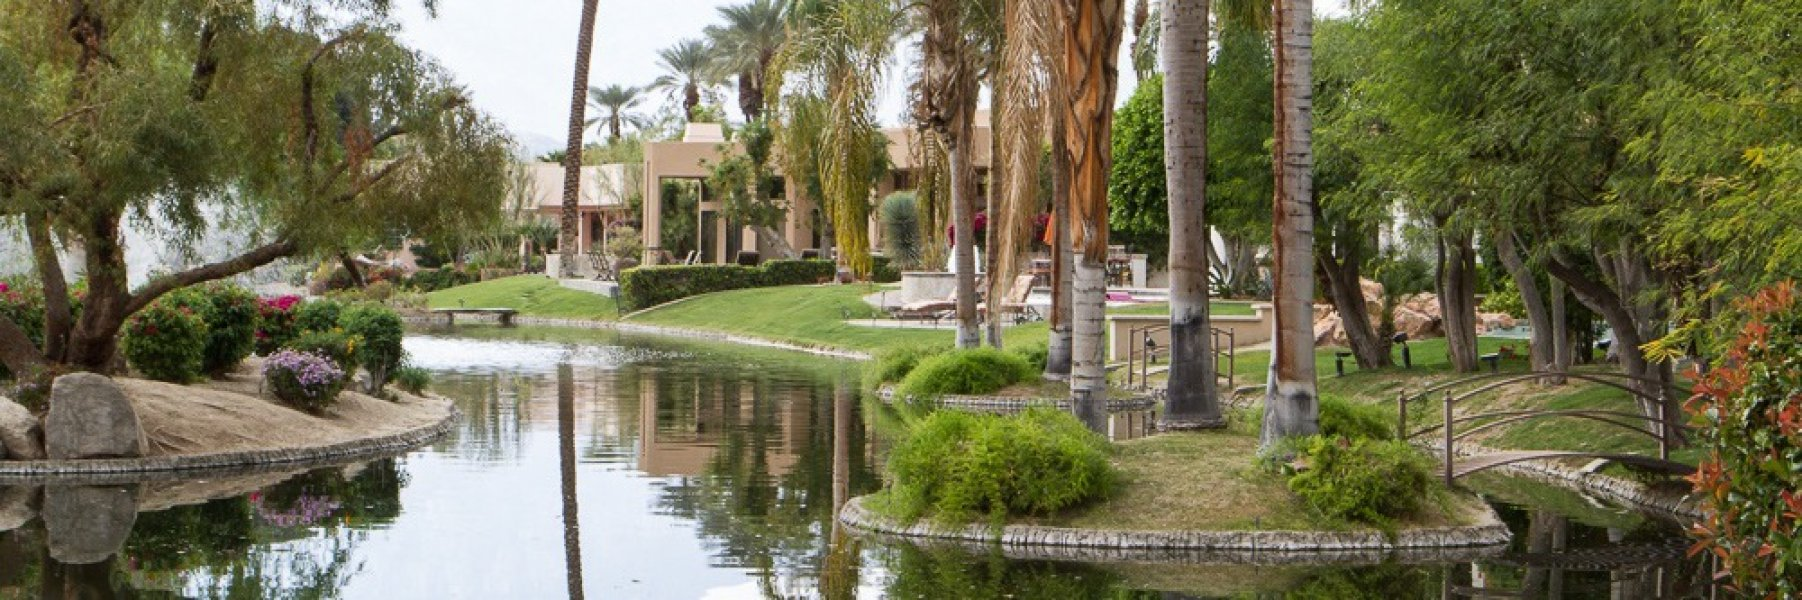 Waterford is a community of homes in Rancho Mirage California